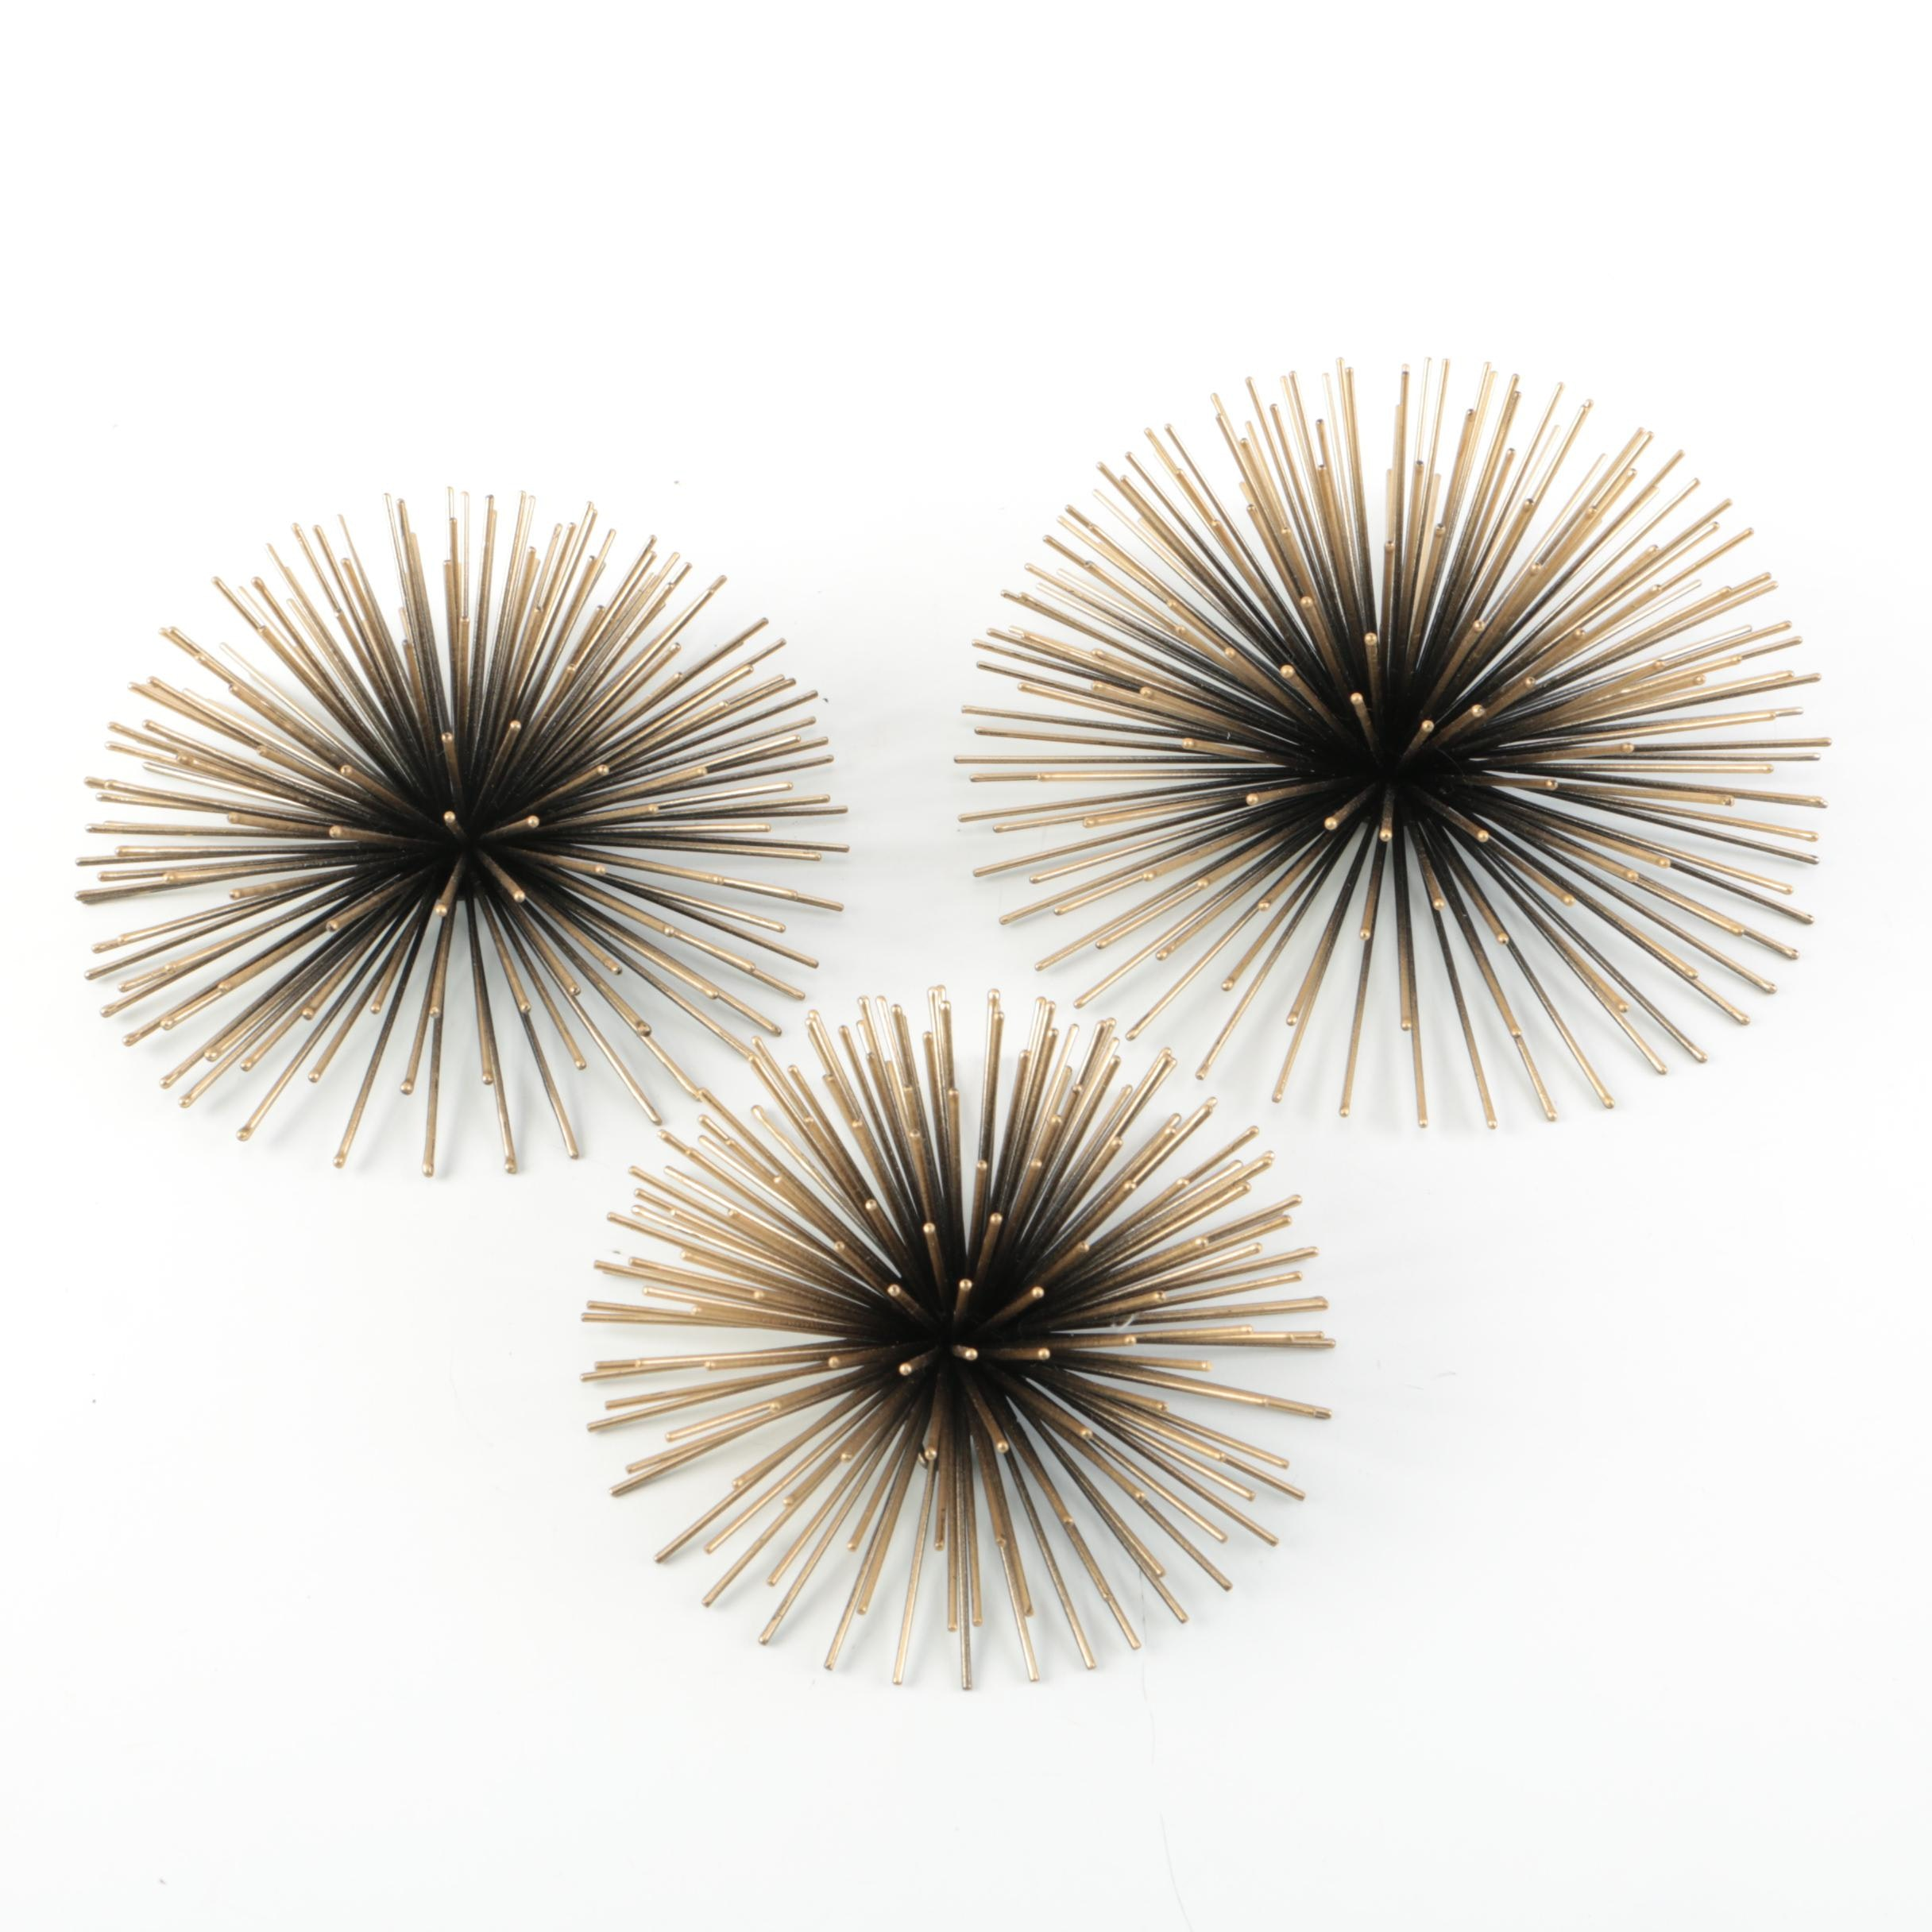 Gold-Toned Starburst Wall Sculpture